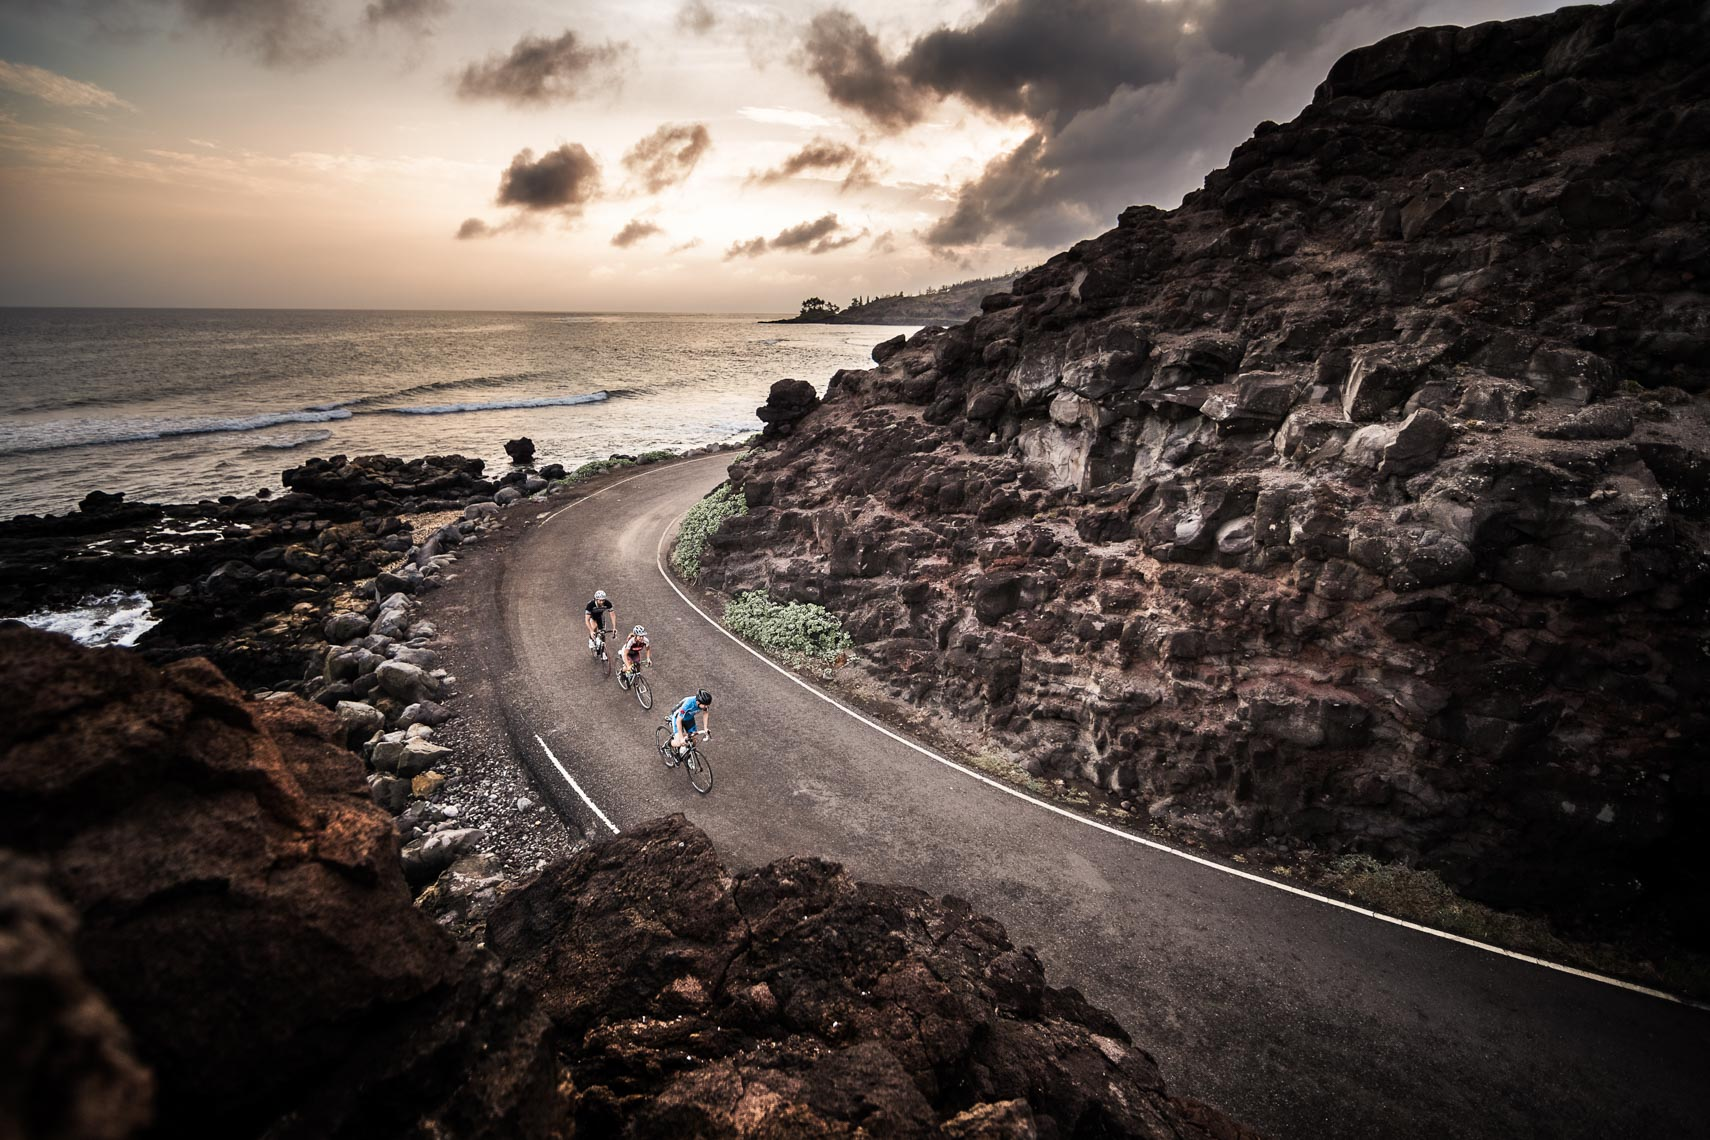 Road riding at sunset in Maui, Hawaii